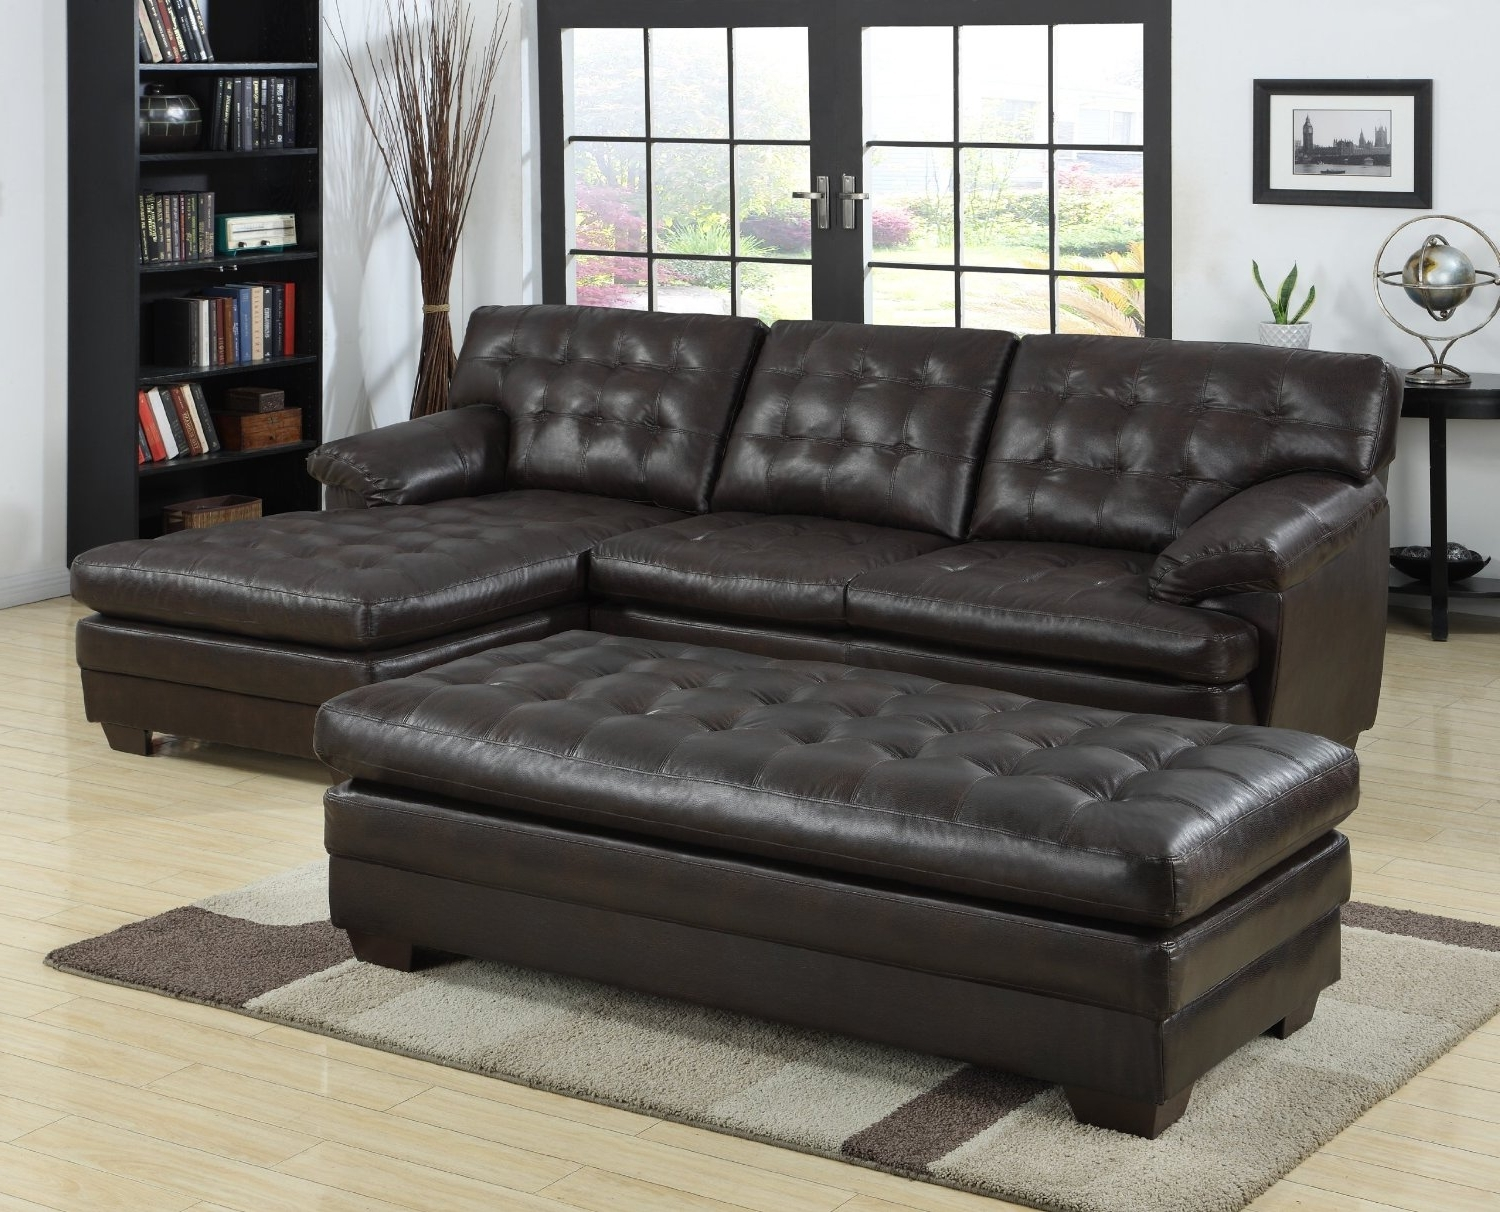 Fashionable Tufted Sectionals With Chaise With Black Tufted Leather Sectional Sofa With Chaise And Bench Seat (View 8 of 15)